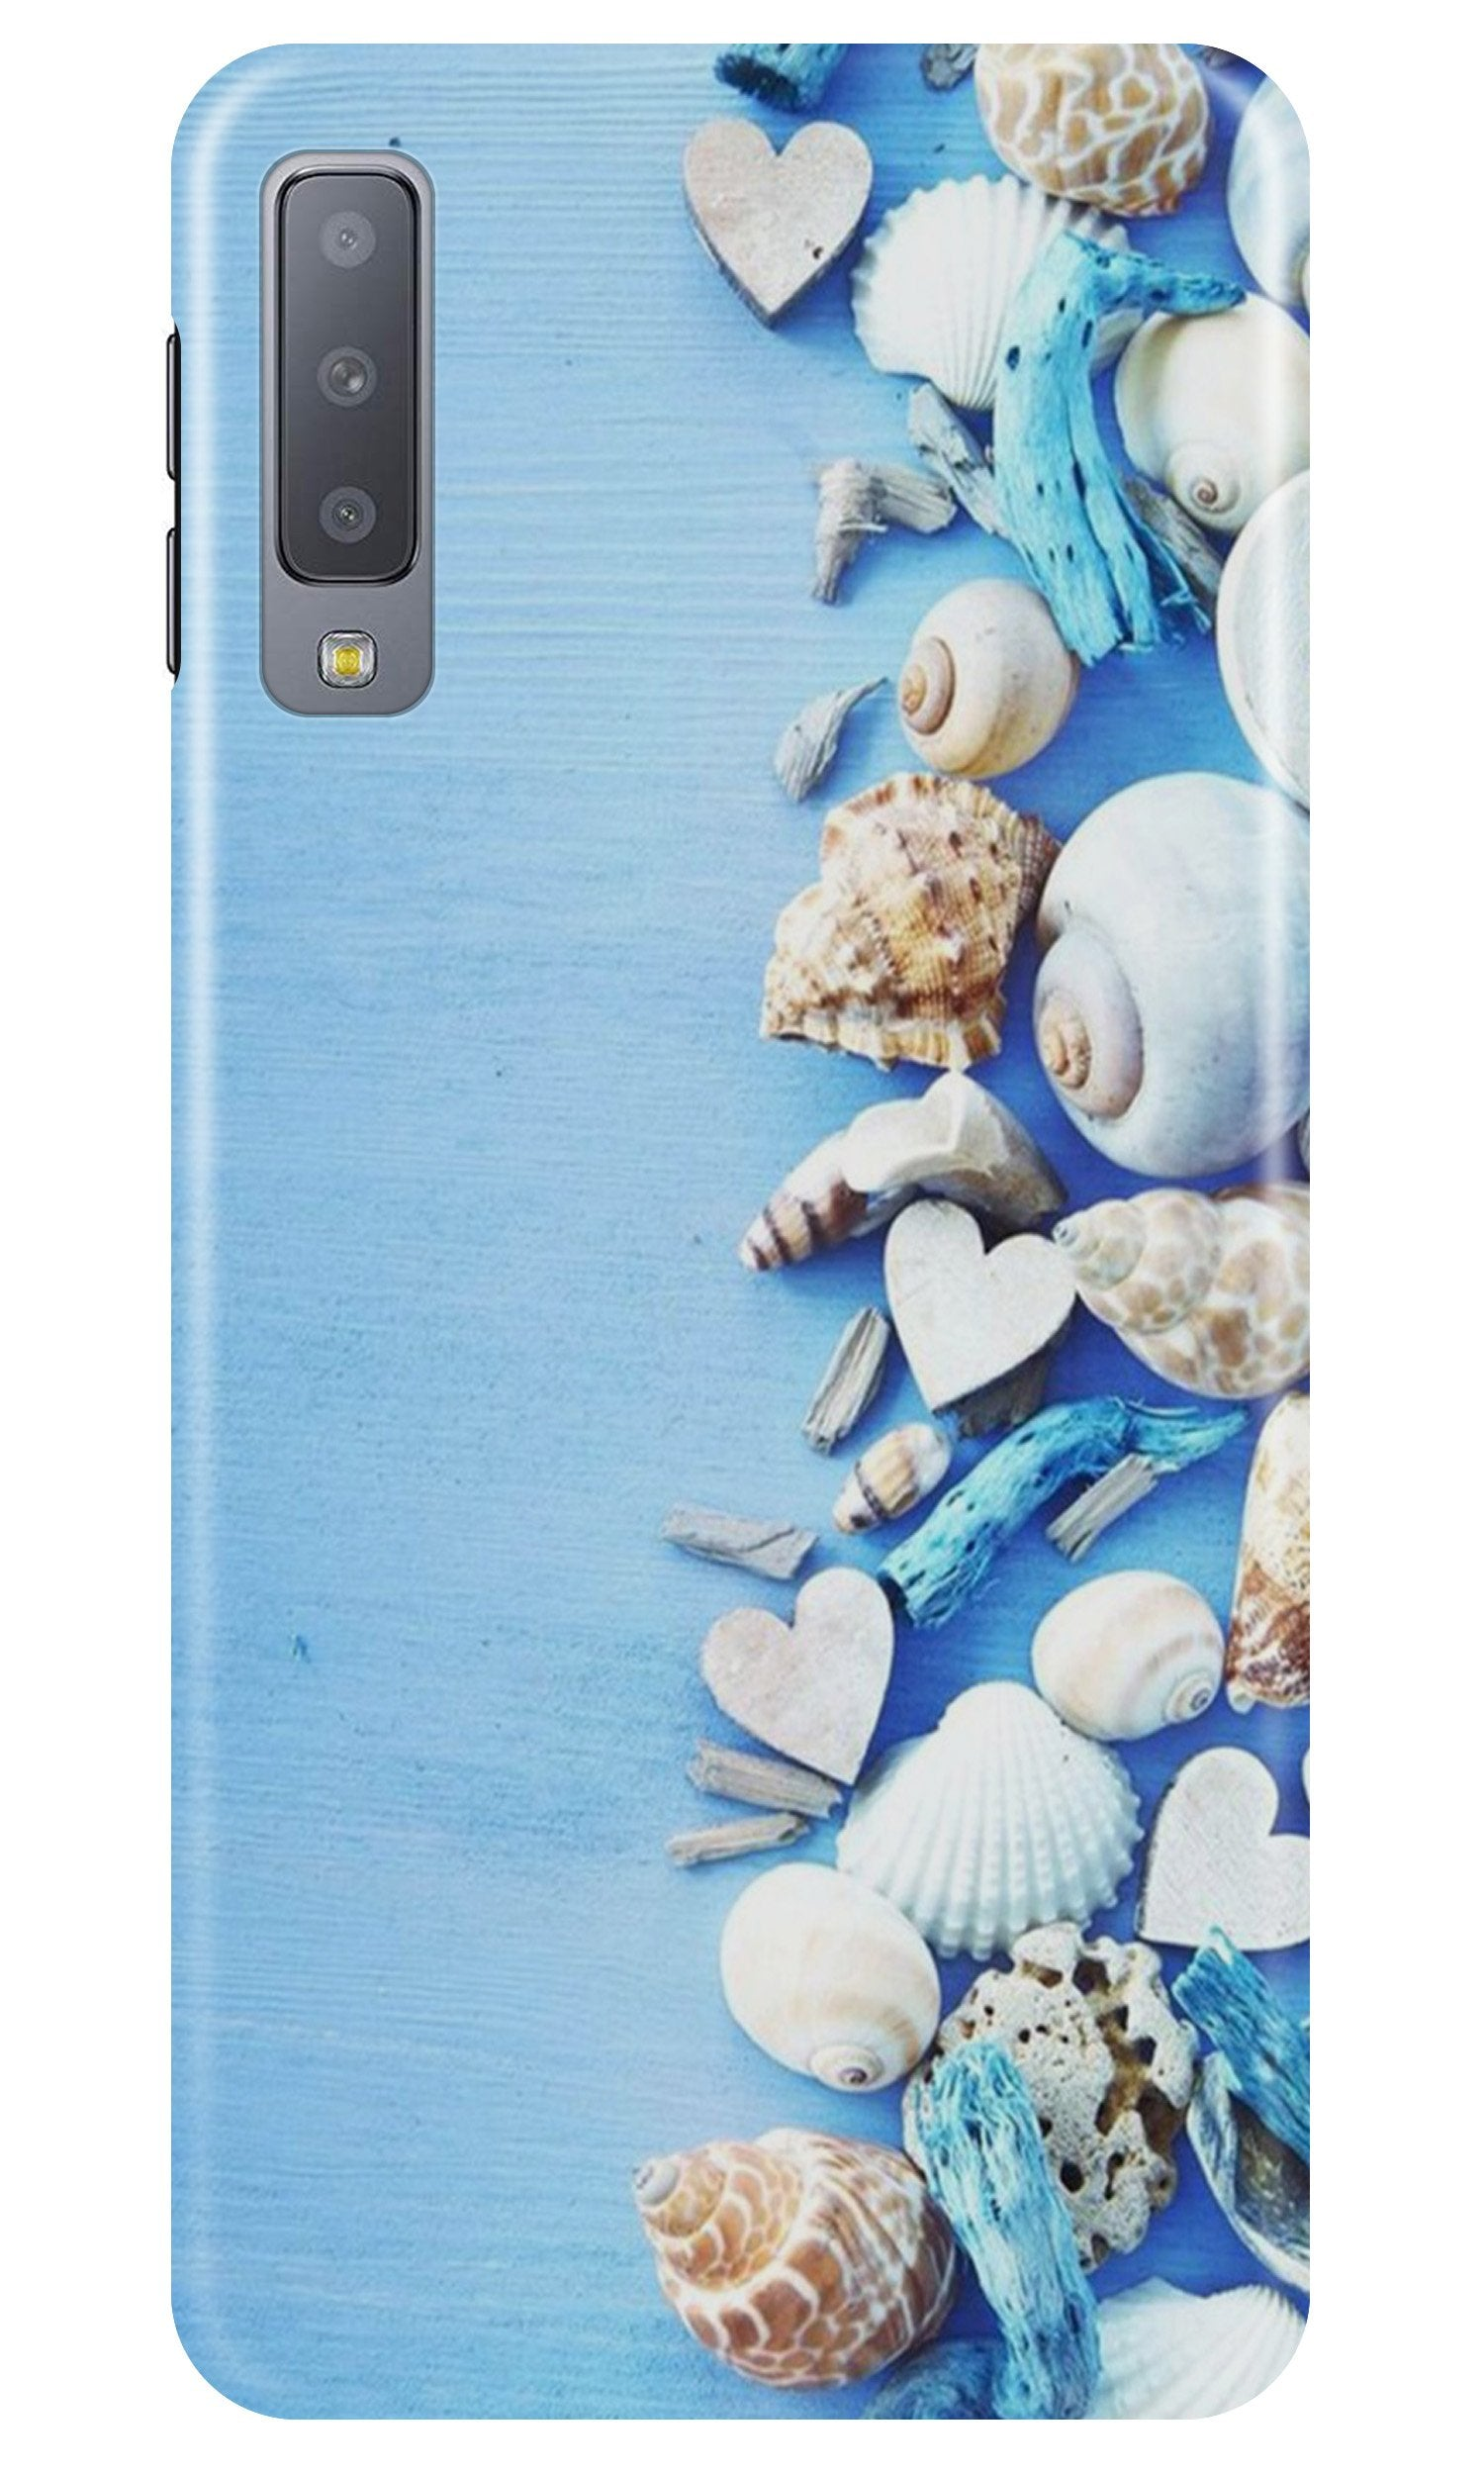 Sea Shells2 Case for Samsung A50